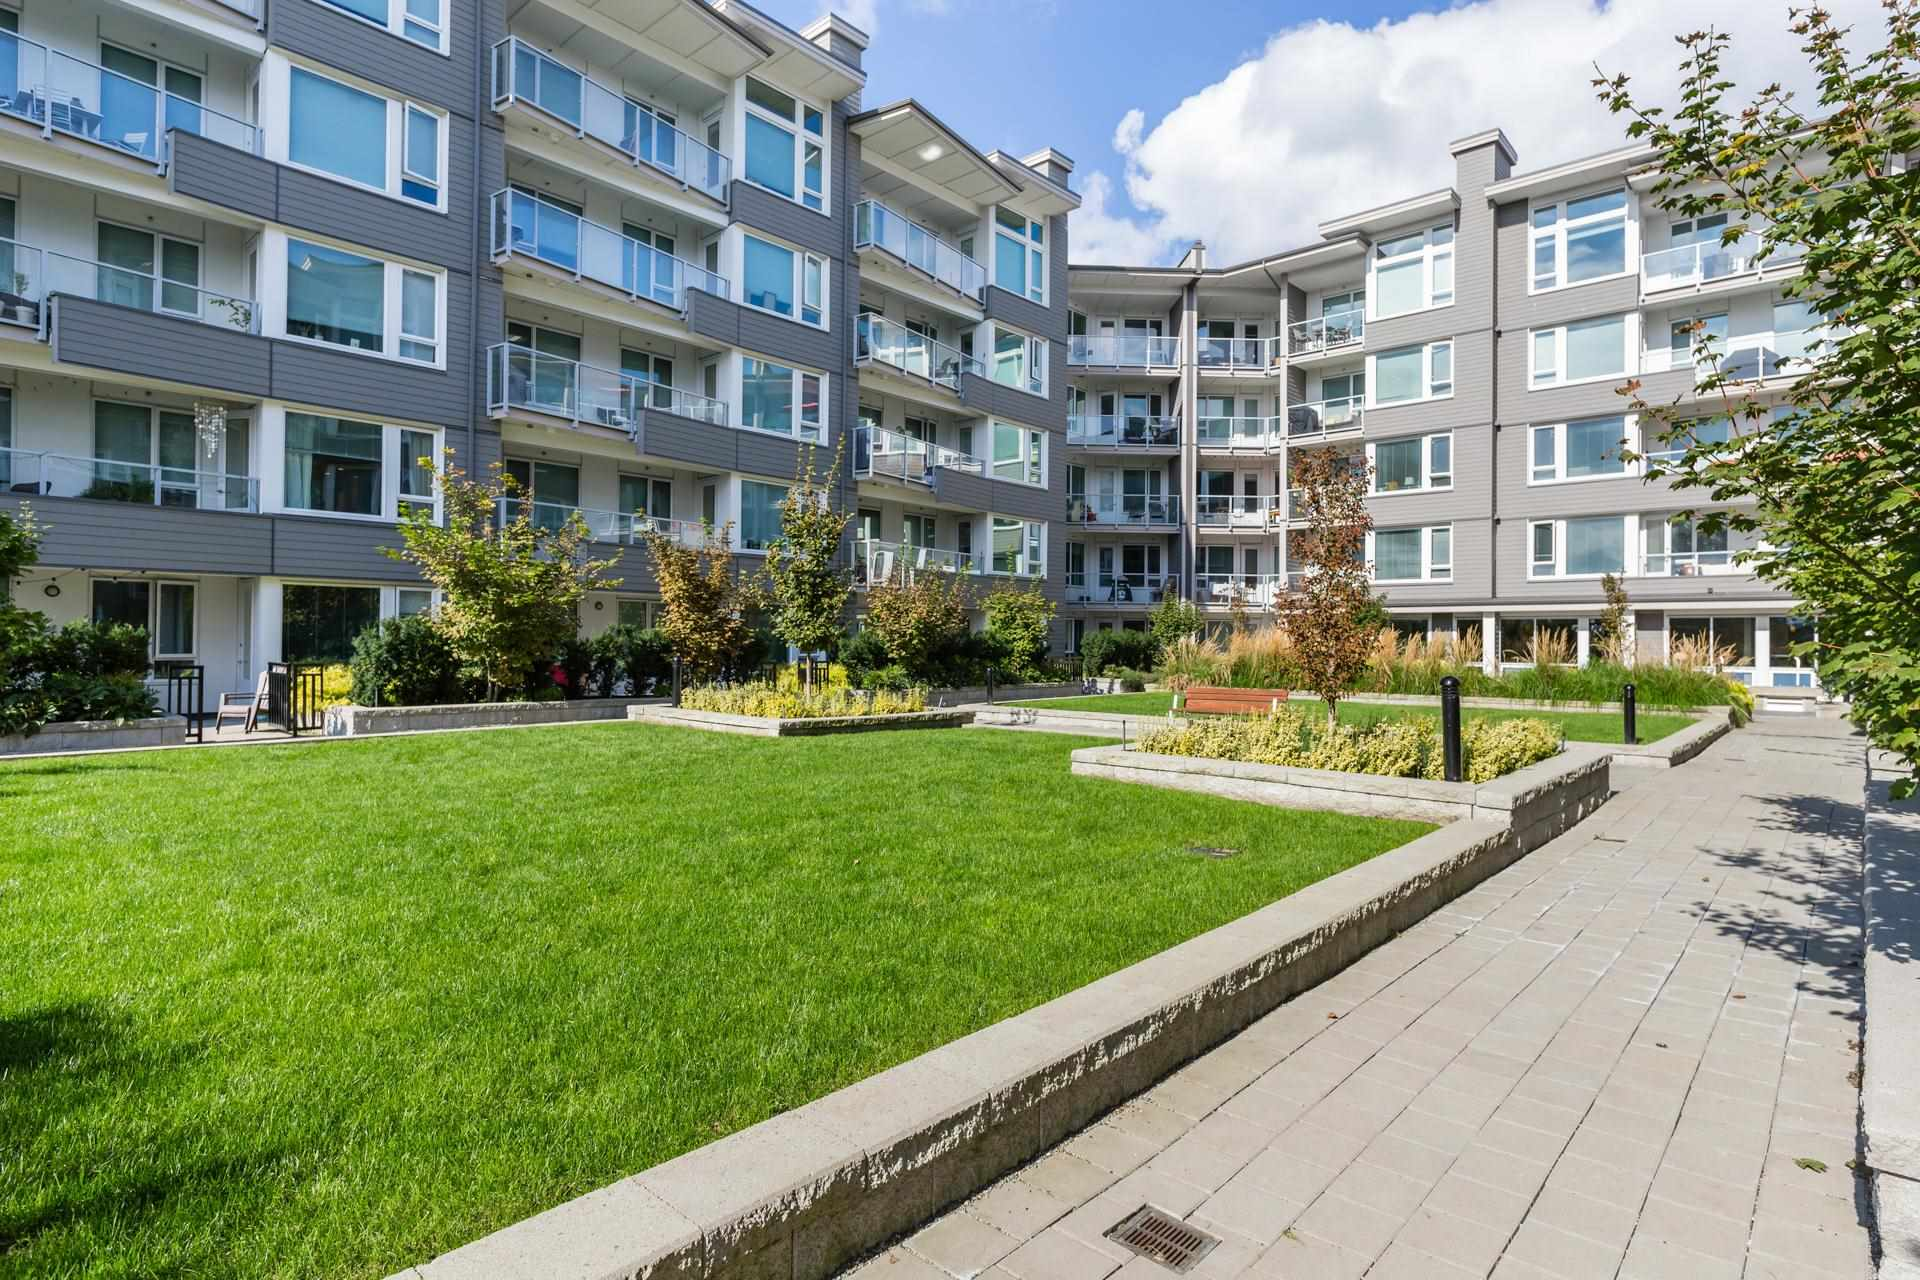 207 255 W 1ST STREET - Lower Lonsdale Apartment/Condo for sale, 2 Bedrooms (R2603882) - #29